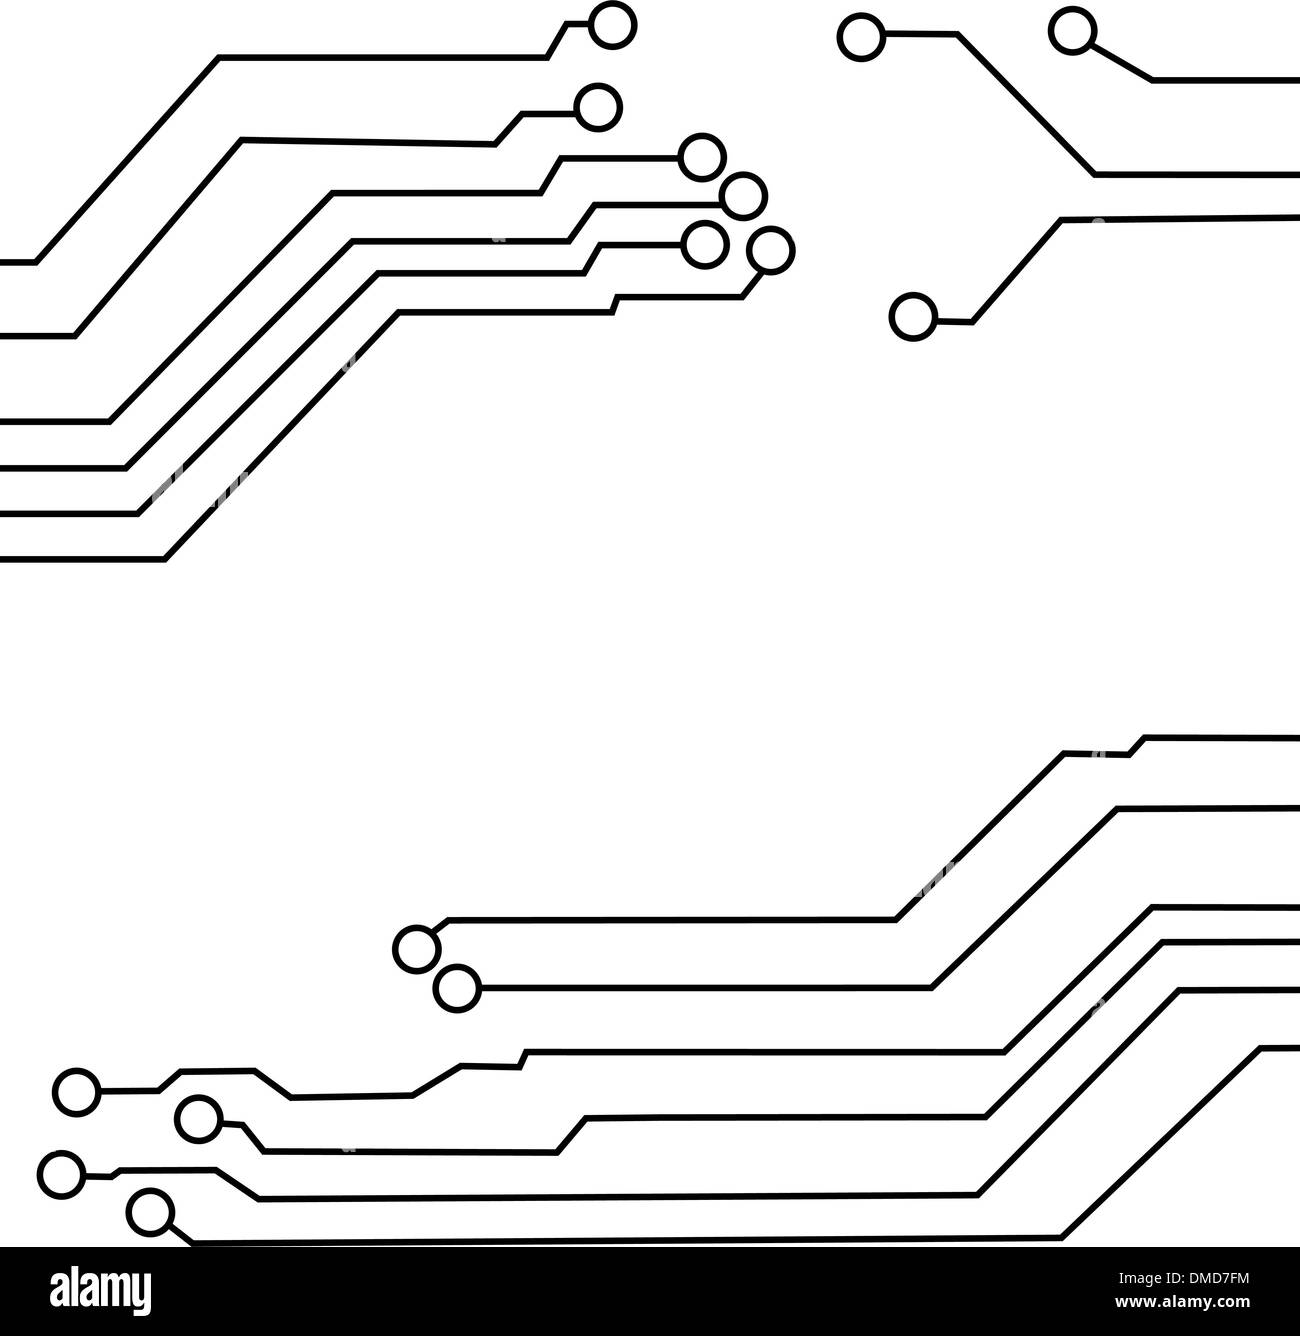 hight resolution of circuit board background texture stock image